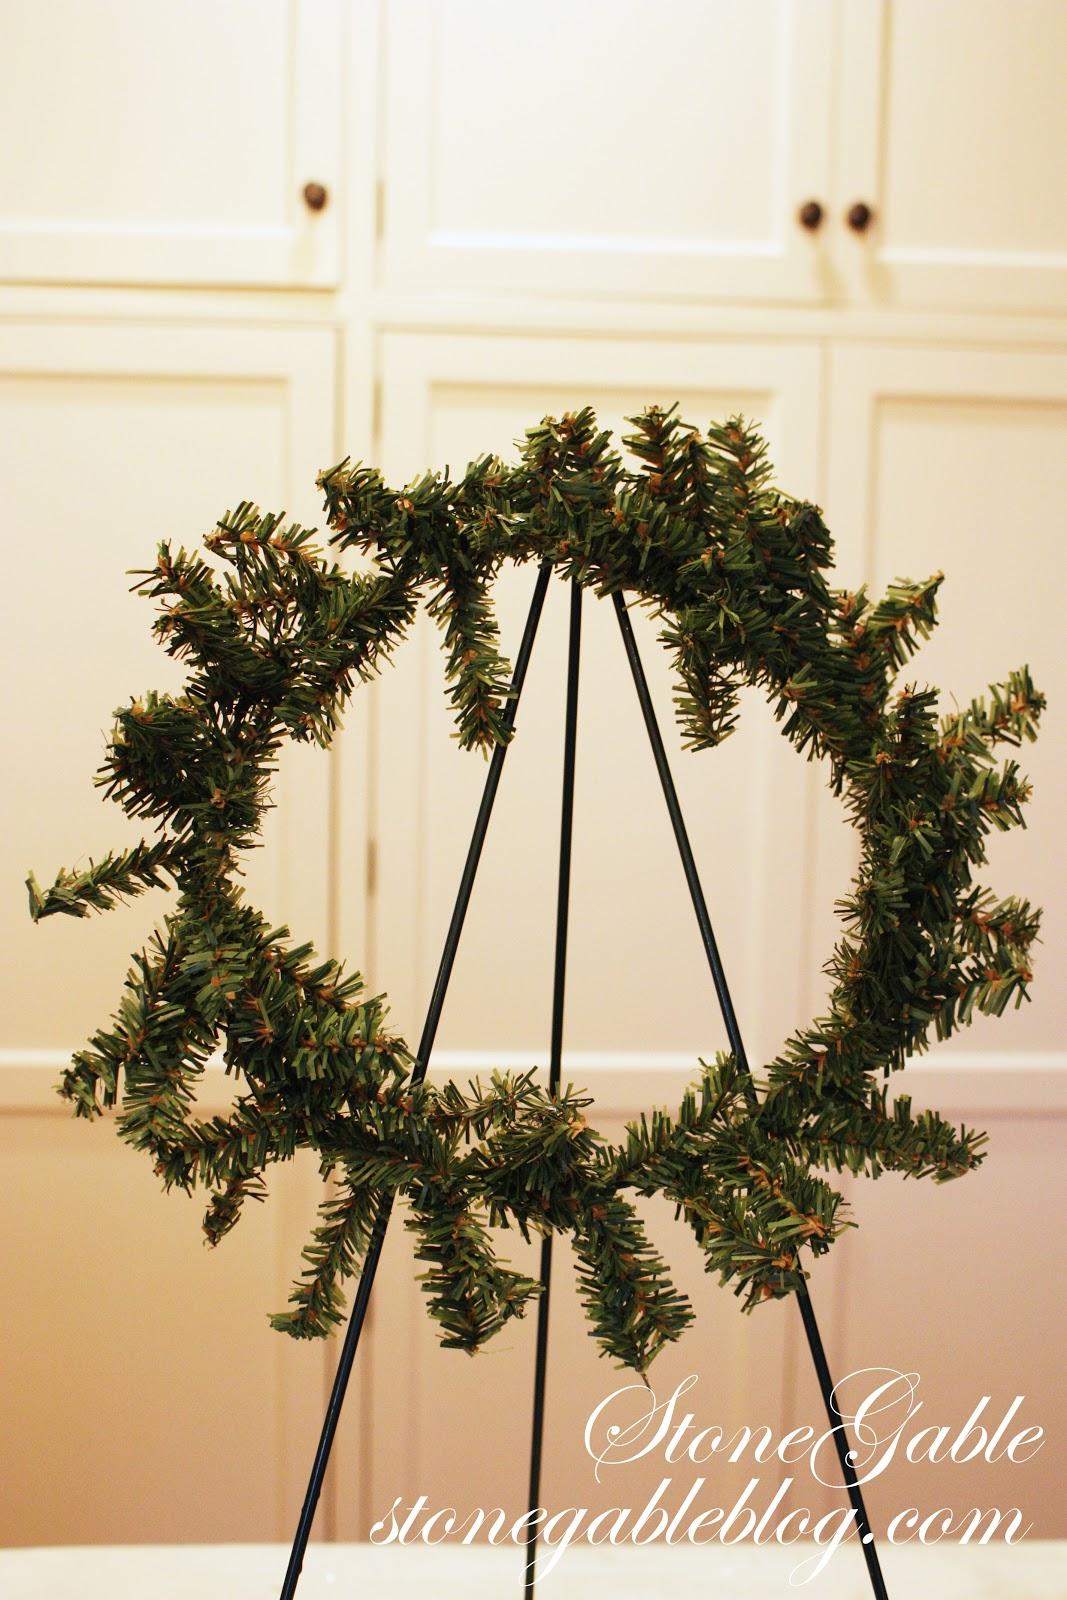 How to make real christmas wreaths - This Is How The Wreath First Starts Out Pretty Thin And Quite Snarly Fluff It Up The Best You Can